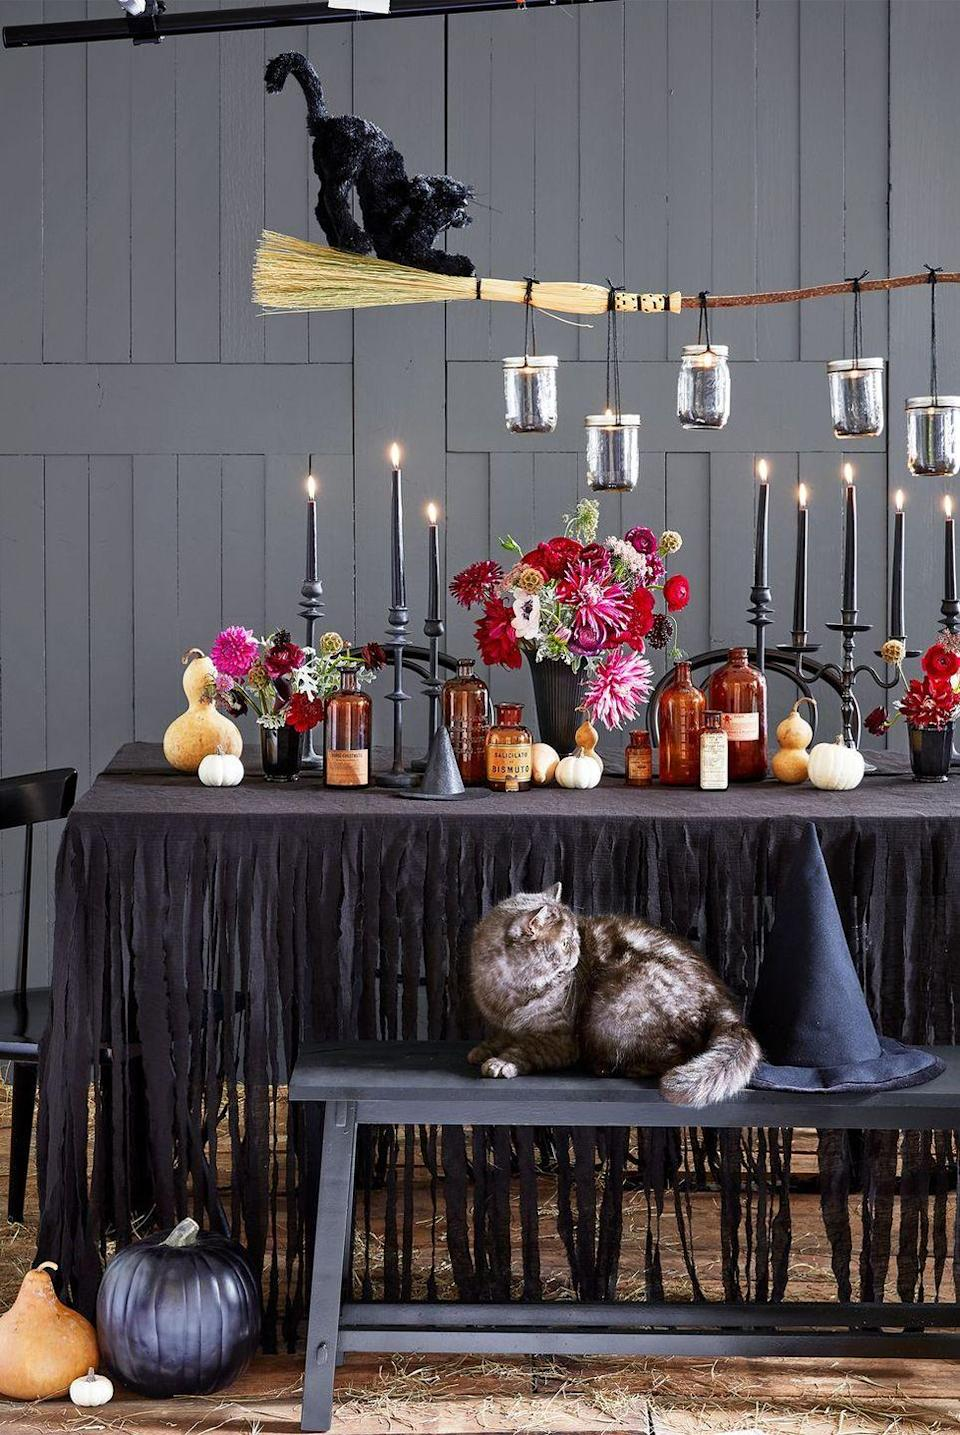 <p>Go all out with apothecary bottles, gourds, flowers and black candles lining the center of your table. A black cat sitting atop a witch's broom suspended from the ceiling takes it over the top.</p>